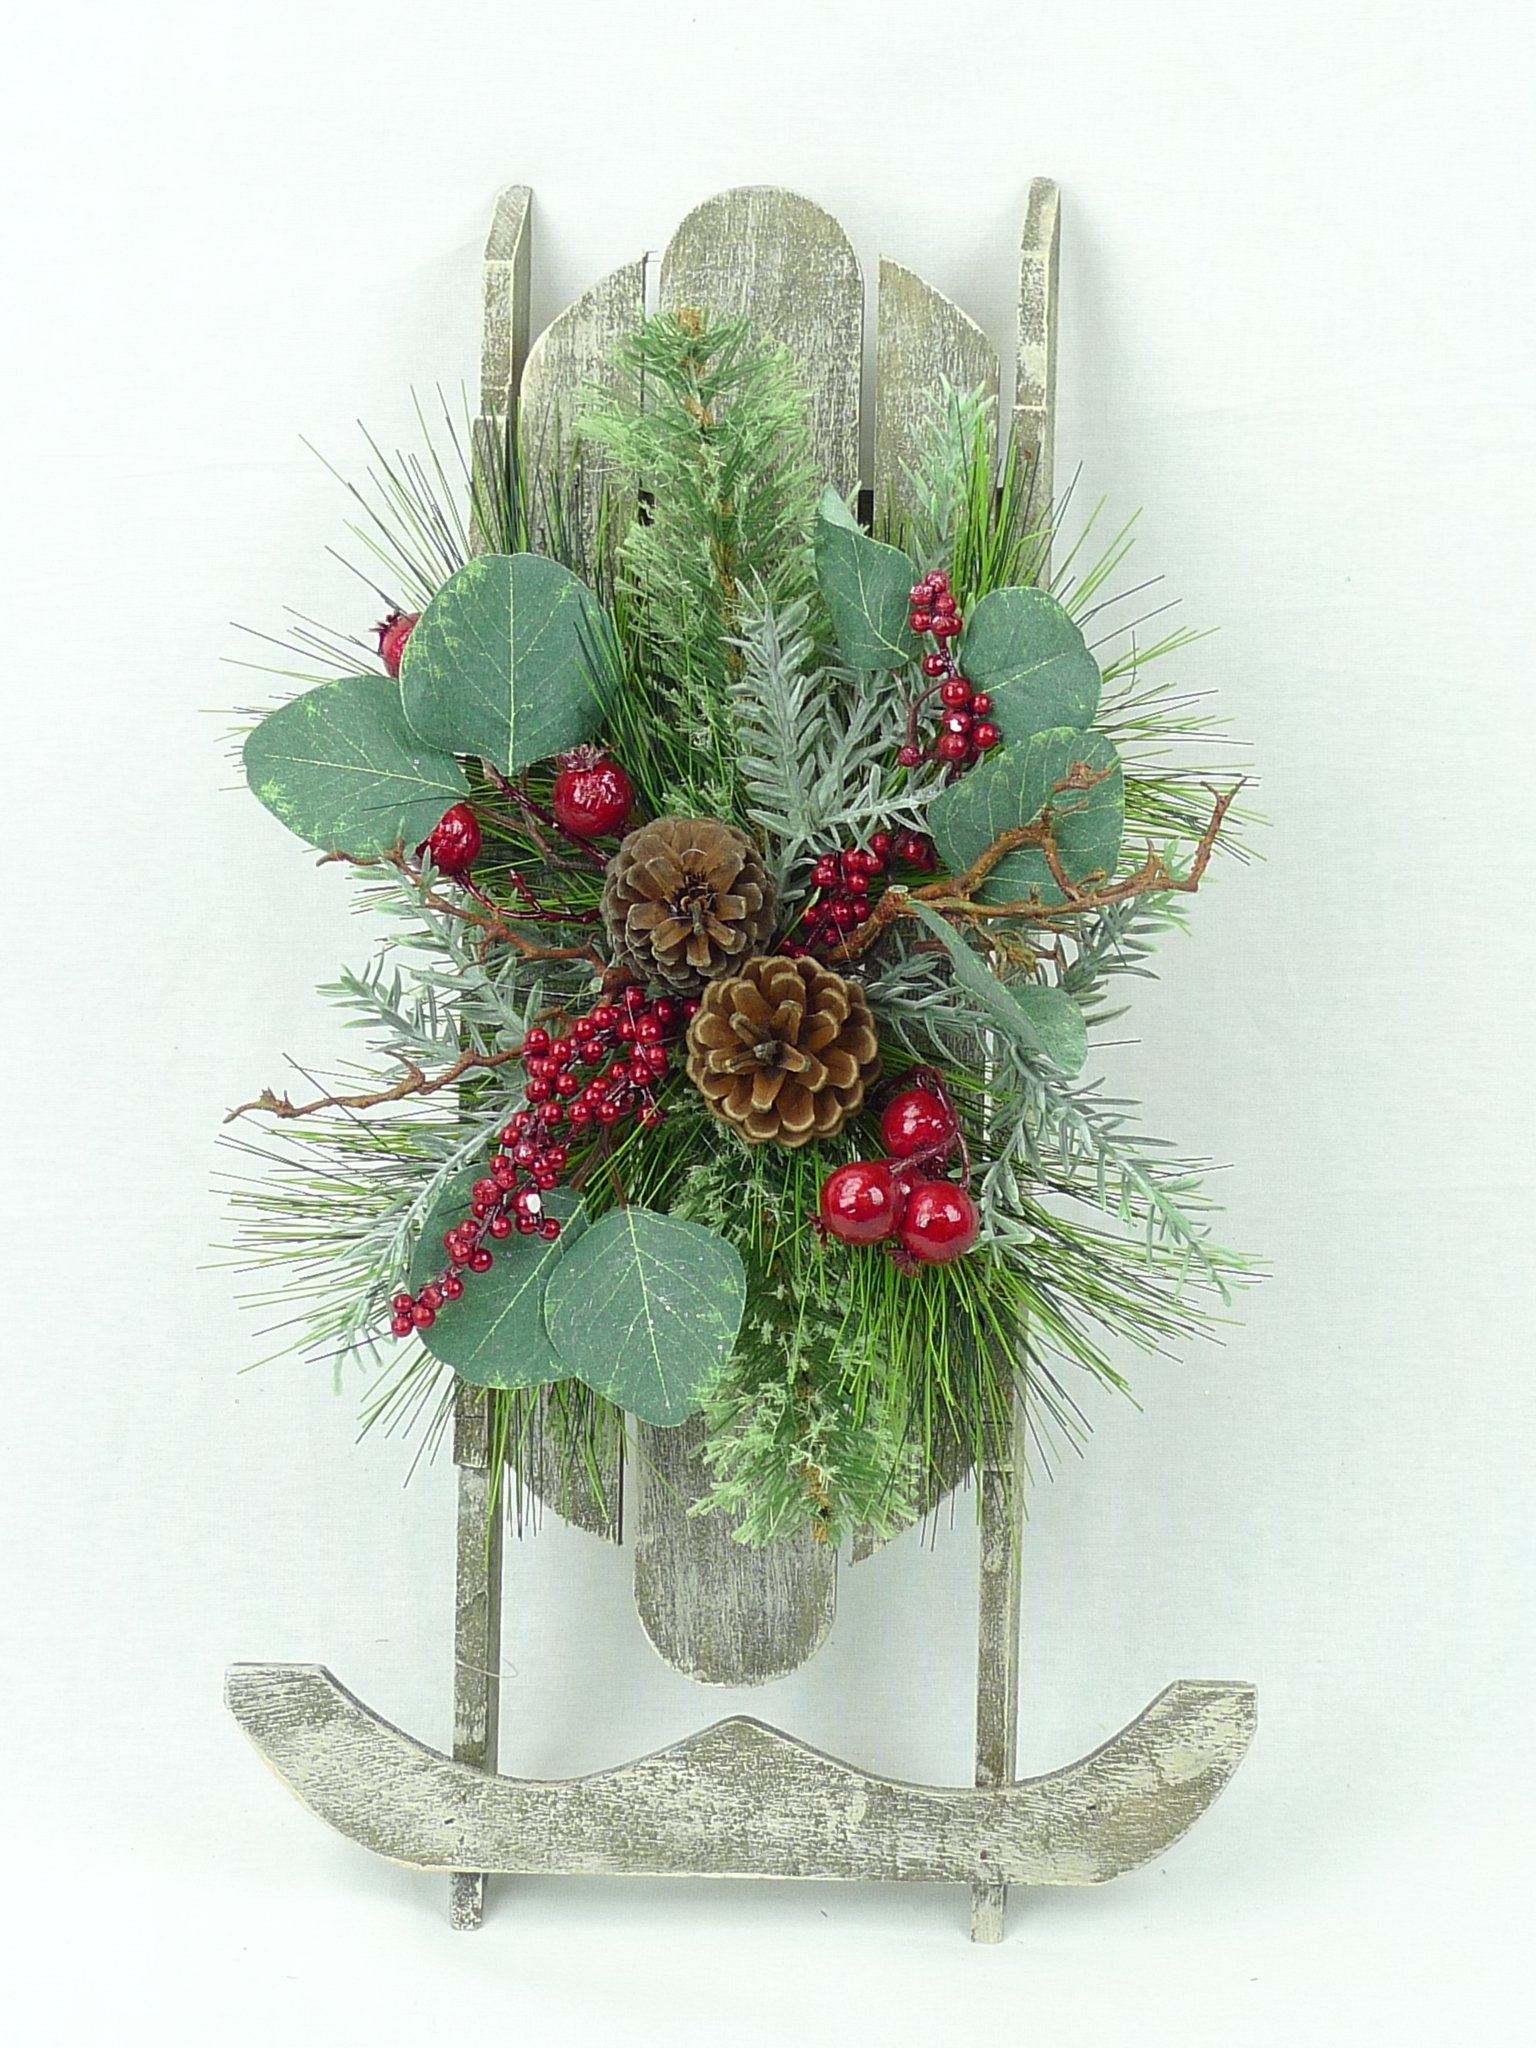 Brighton Pine White Washed Wooden Christmas Sled with Pine, Pinecones, and Red Berry Decoration